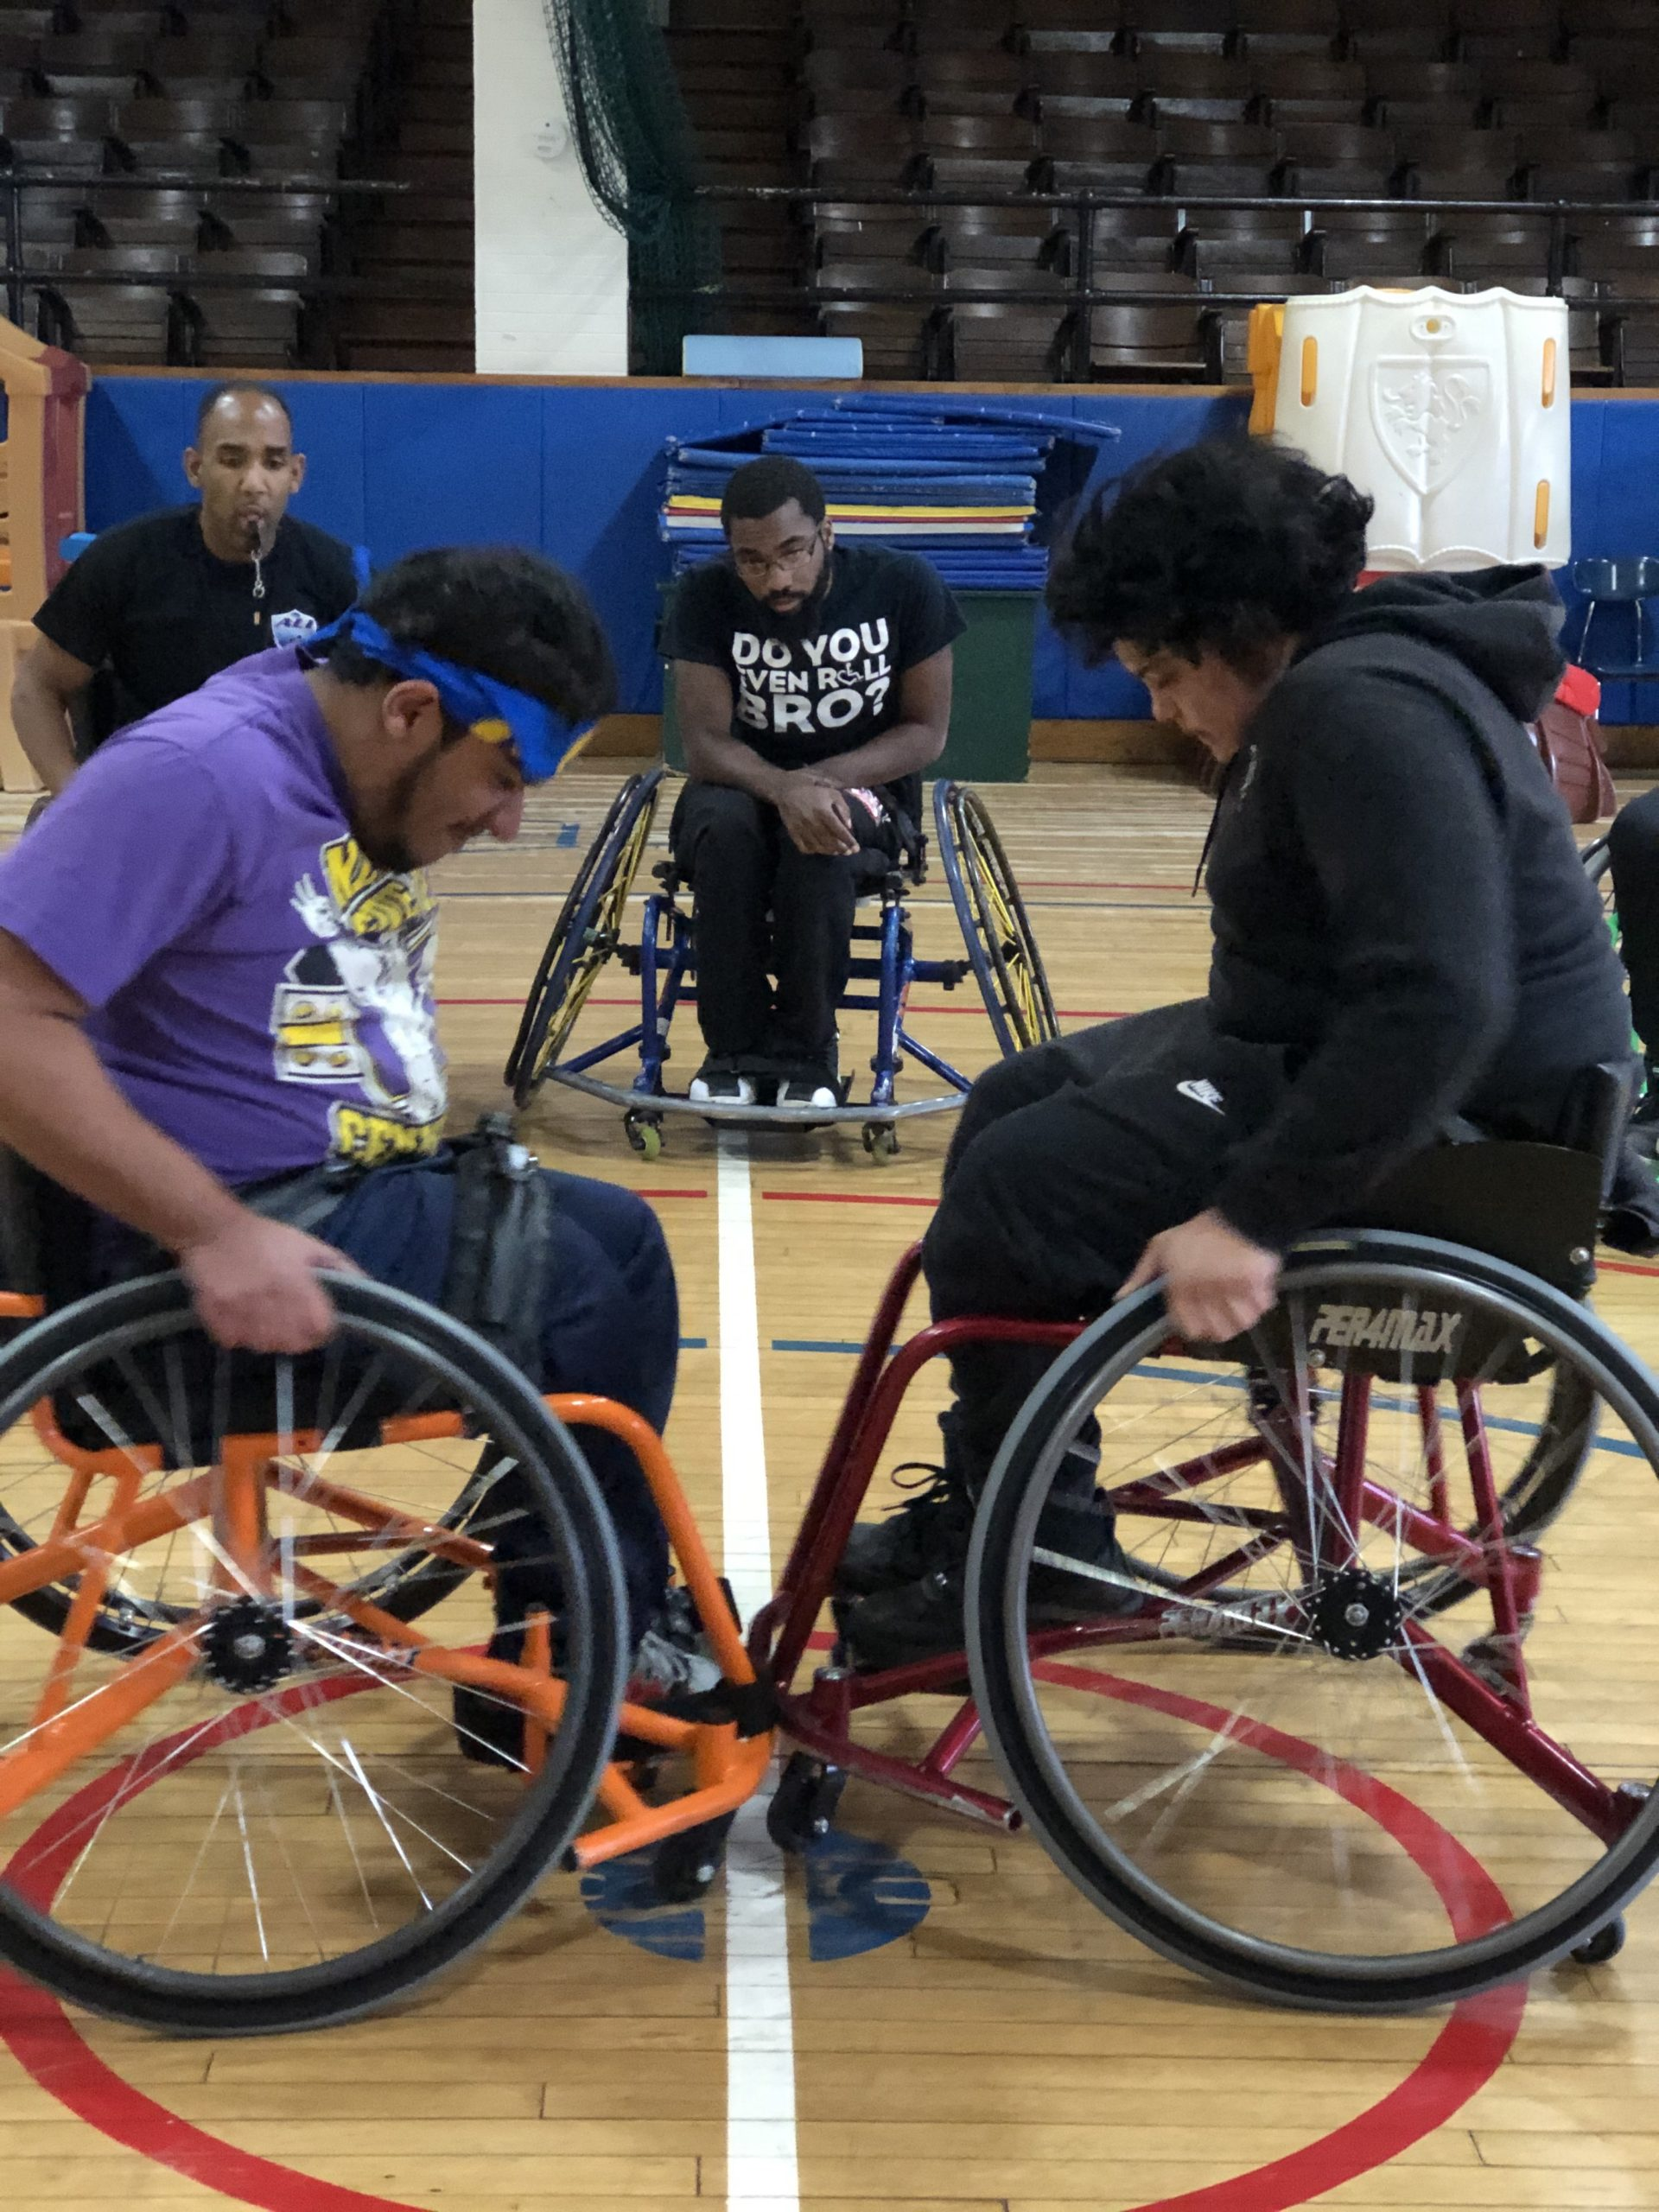 Ali Adaptive Sports Lifts Up Those With Disabilities Physically And Emotionally